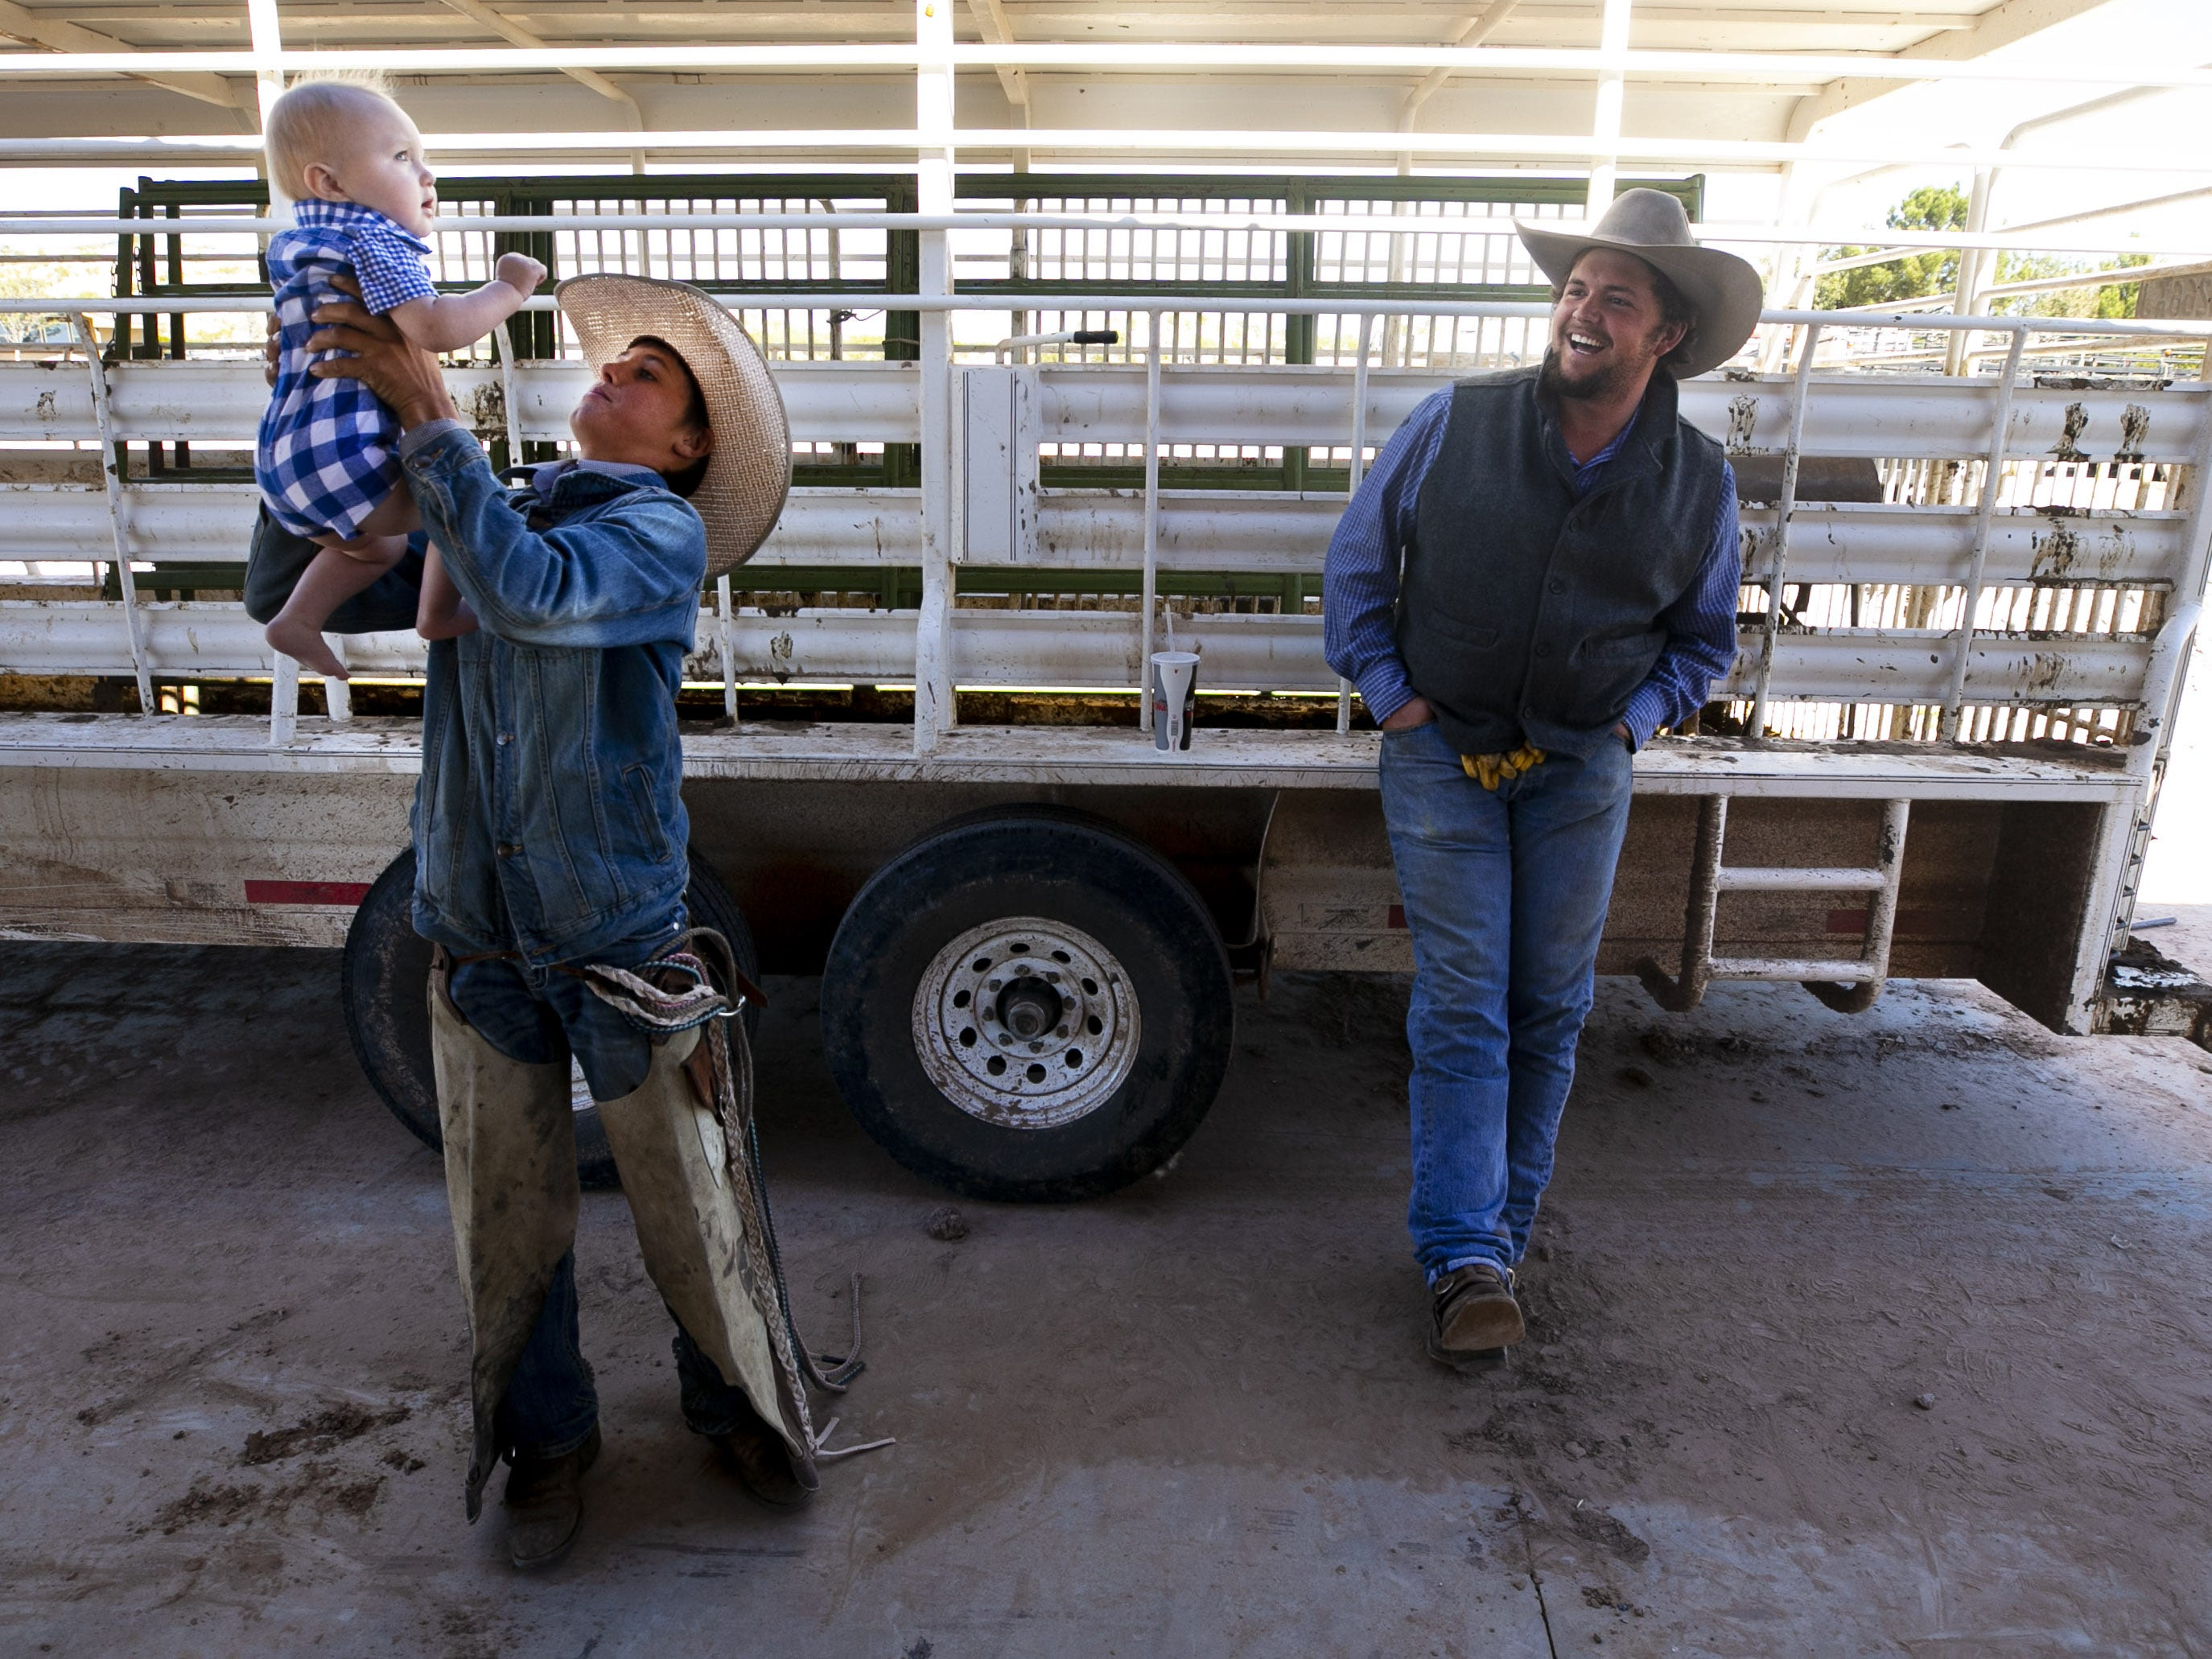 Cowboy Trevor Bellamy, 15, holds his nephew, Leighton Goodman, 9 months, as fellow Lady B Ranch cowboy Clayton Davis looks on at the Lazy B Ranch outside of Duncan, Ariz., on Nov. 2, 2018. Former Supreme Court Justice Sandra Day O'Connor grew up on the ranch.